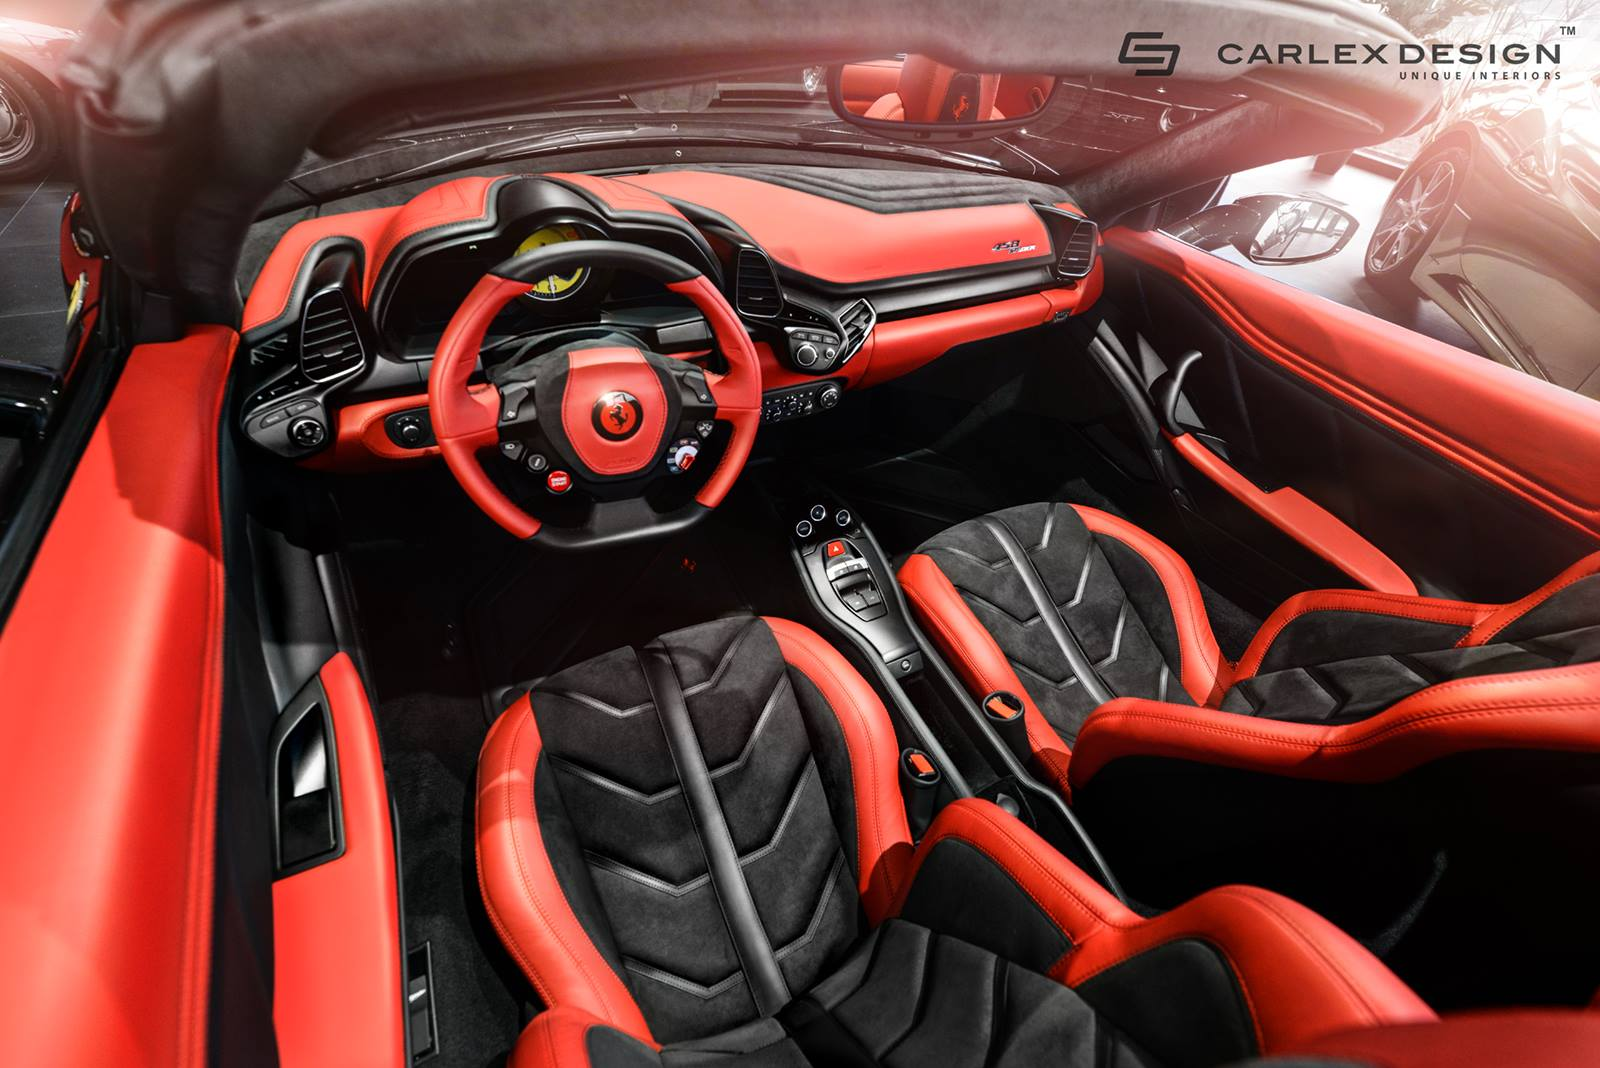 Ferrari 458 Spider Gets Stunning New Interior From Carlex Design